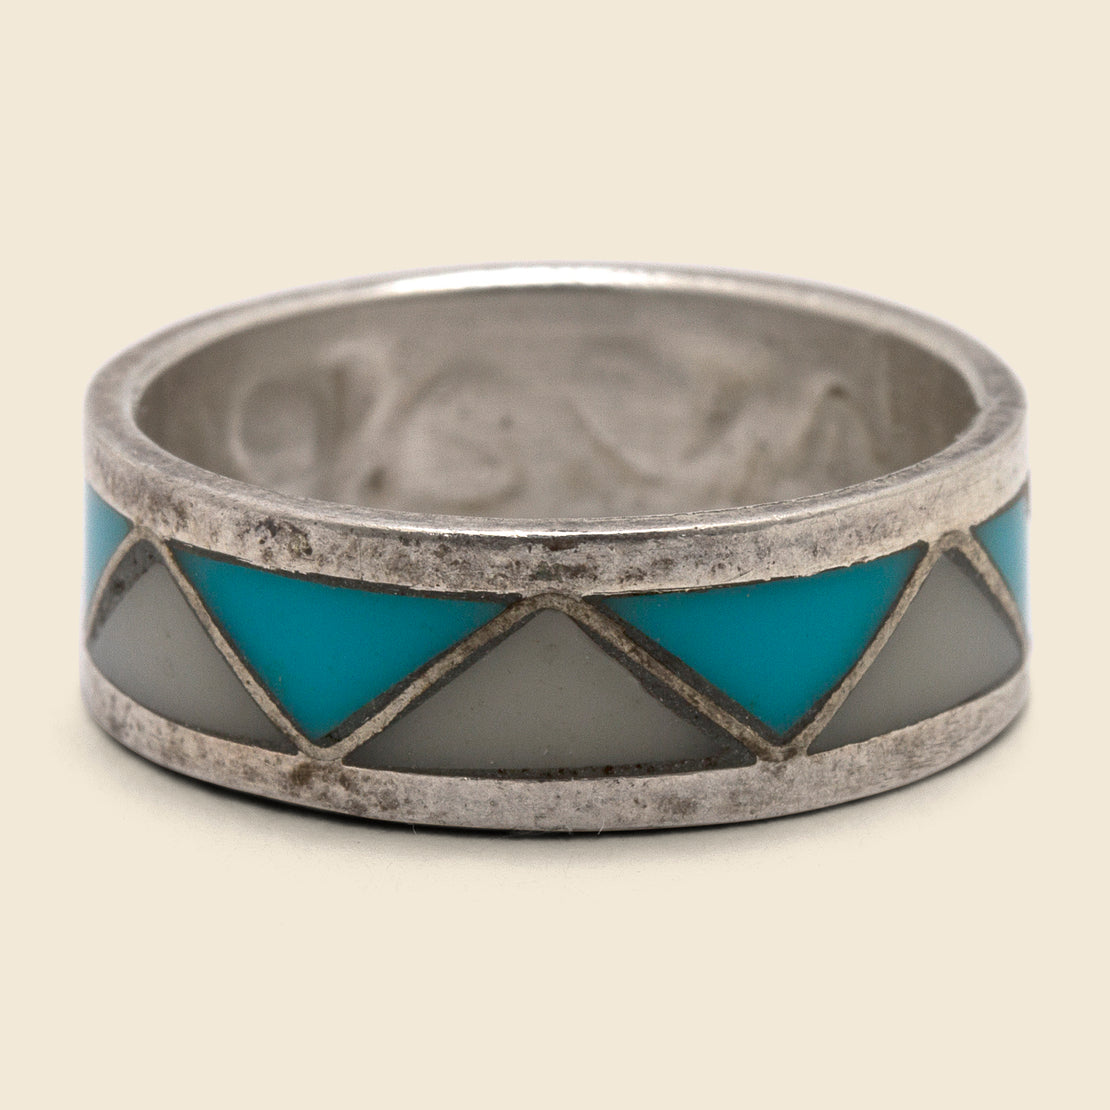 Vintage White Coral & Turquoise Inlay Band - Silver